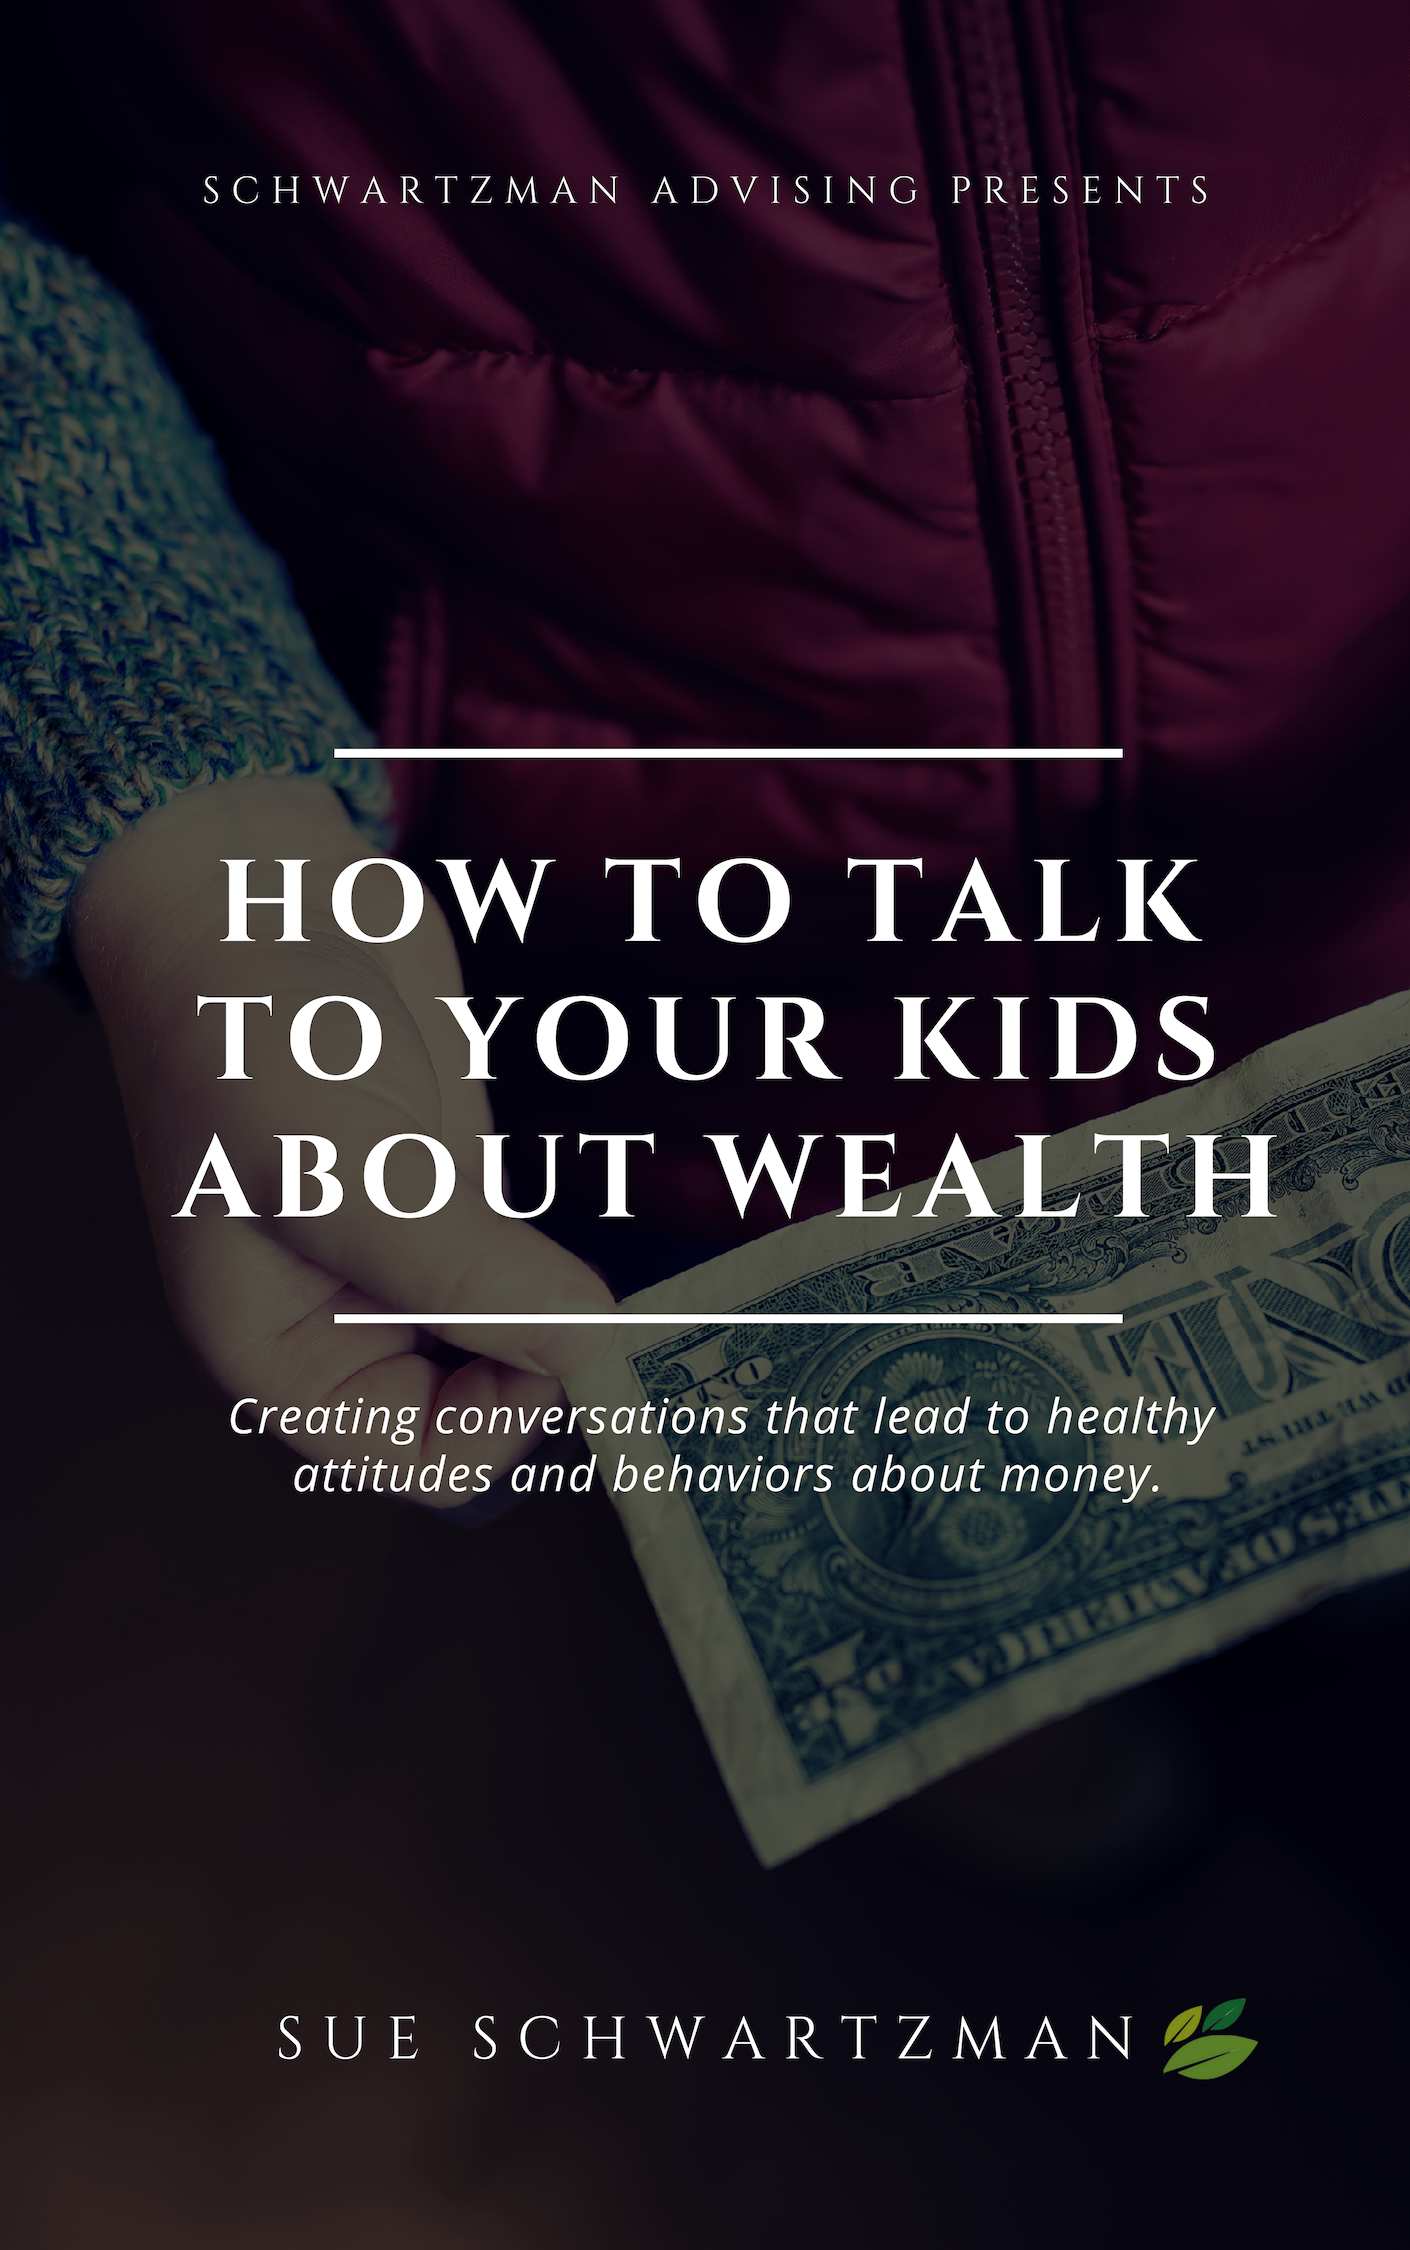 As a Thank You for attending the event… - Please enjoy this FREE E-BOOK on HOW TO TALK TO YOUR KIDS ABOUT WEALTH.It includes my 8 top tips and practical tools on creating conversations that lead to healthy attitudes and behaviors around money.